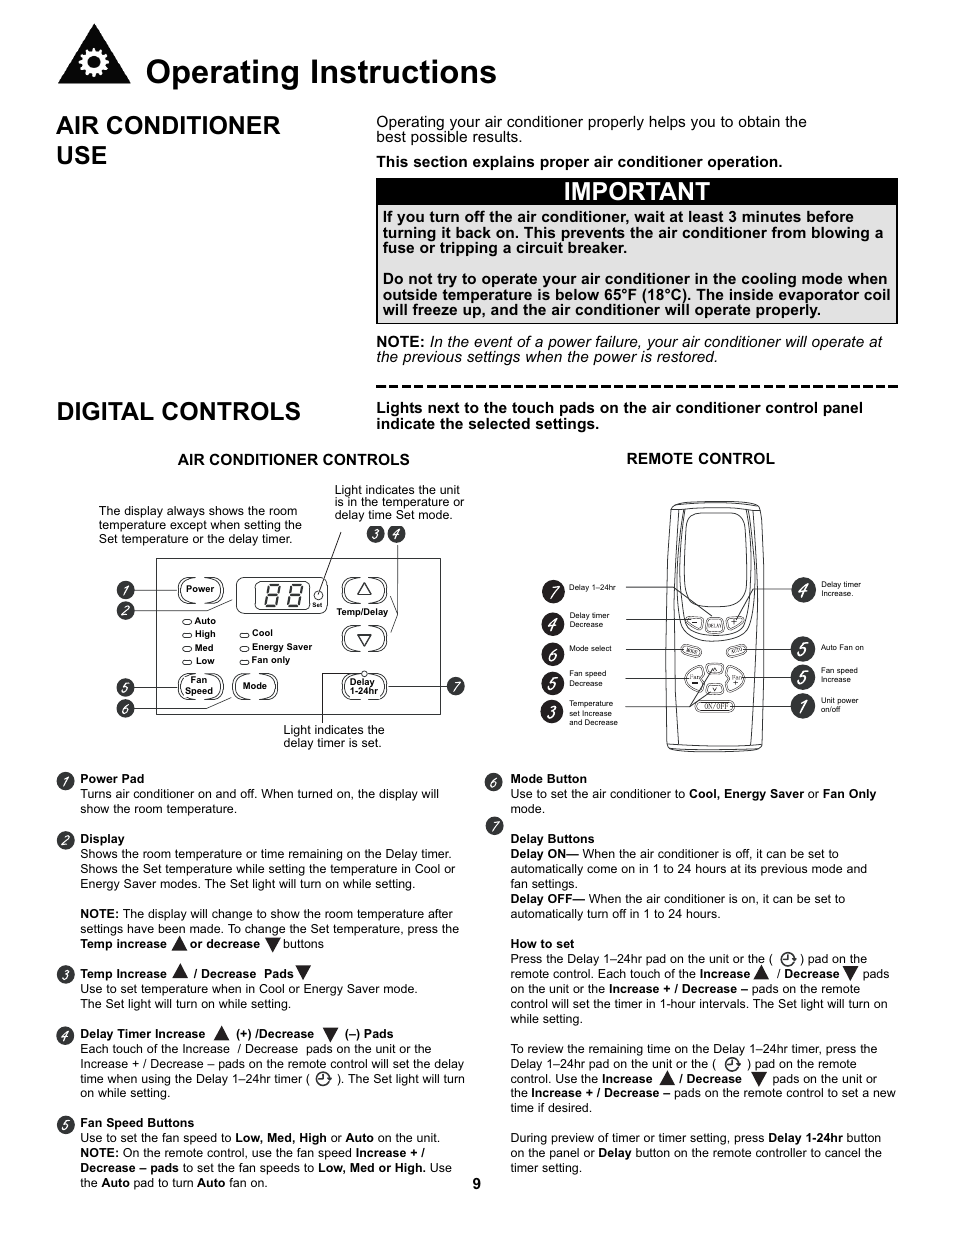 Operating instructions, Air conditioner use, Important